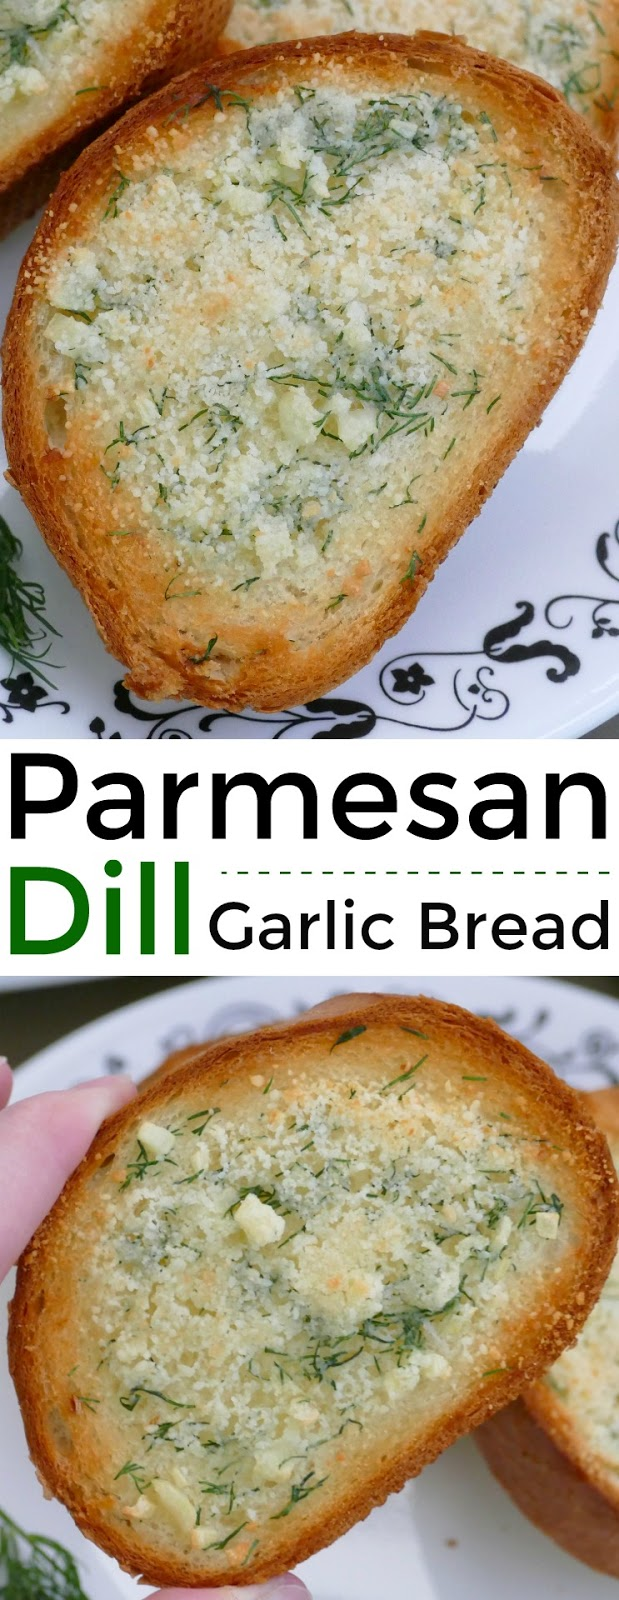 This delicious garlic bread is such a great addition to any meal. The grated parmesan cheese and fresh dill adds a unique pop of flavor to the buttery french bread slices! Easy and ready in less than 15 minutes!